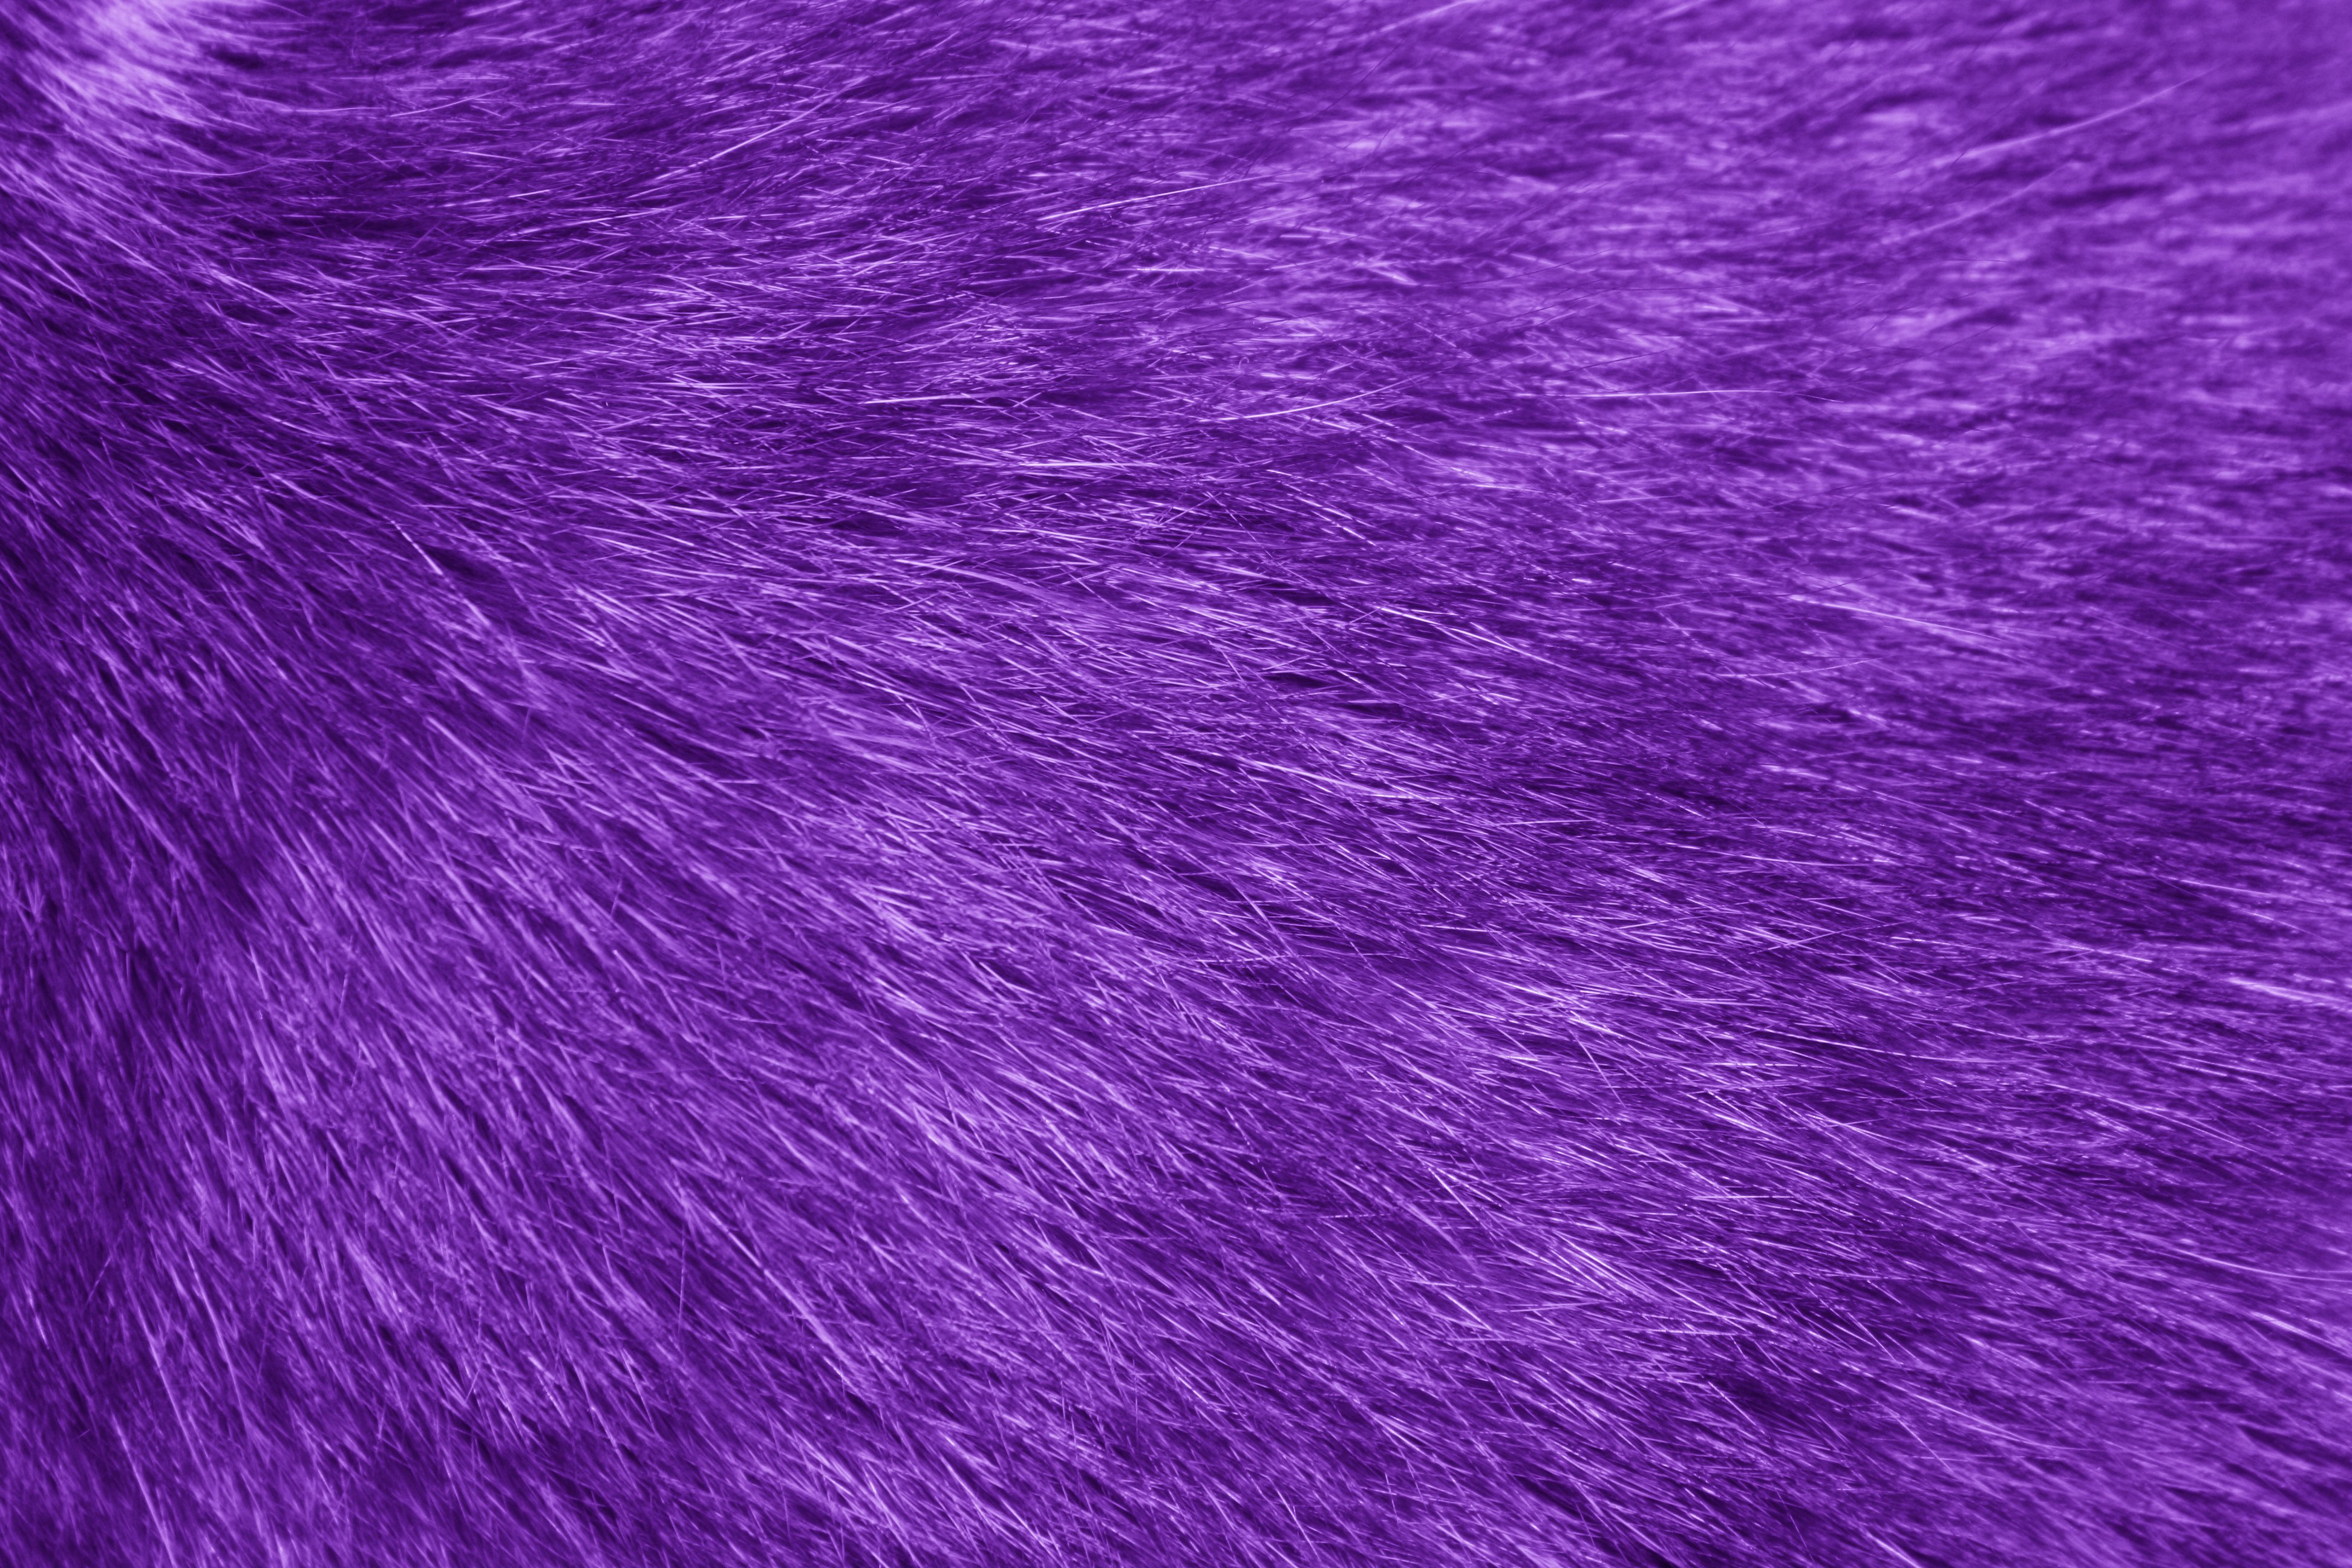 Fur Texture Purple Picture Photograph Photos 3888x2592